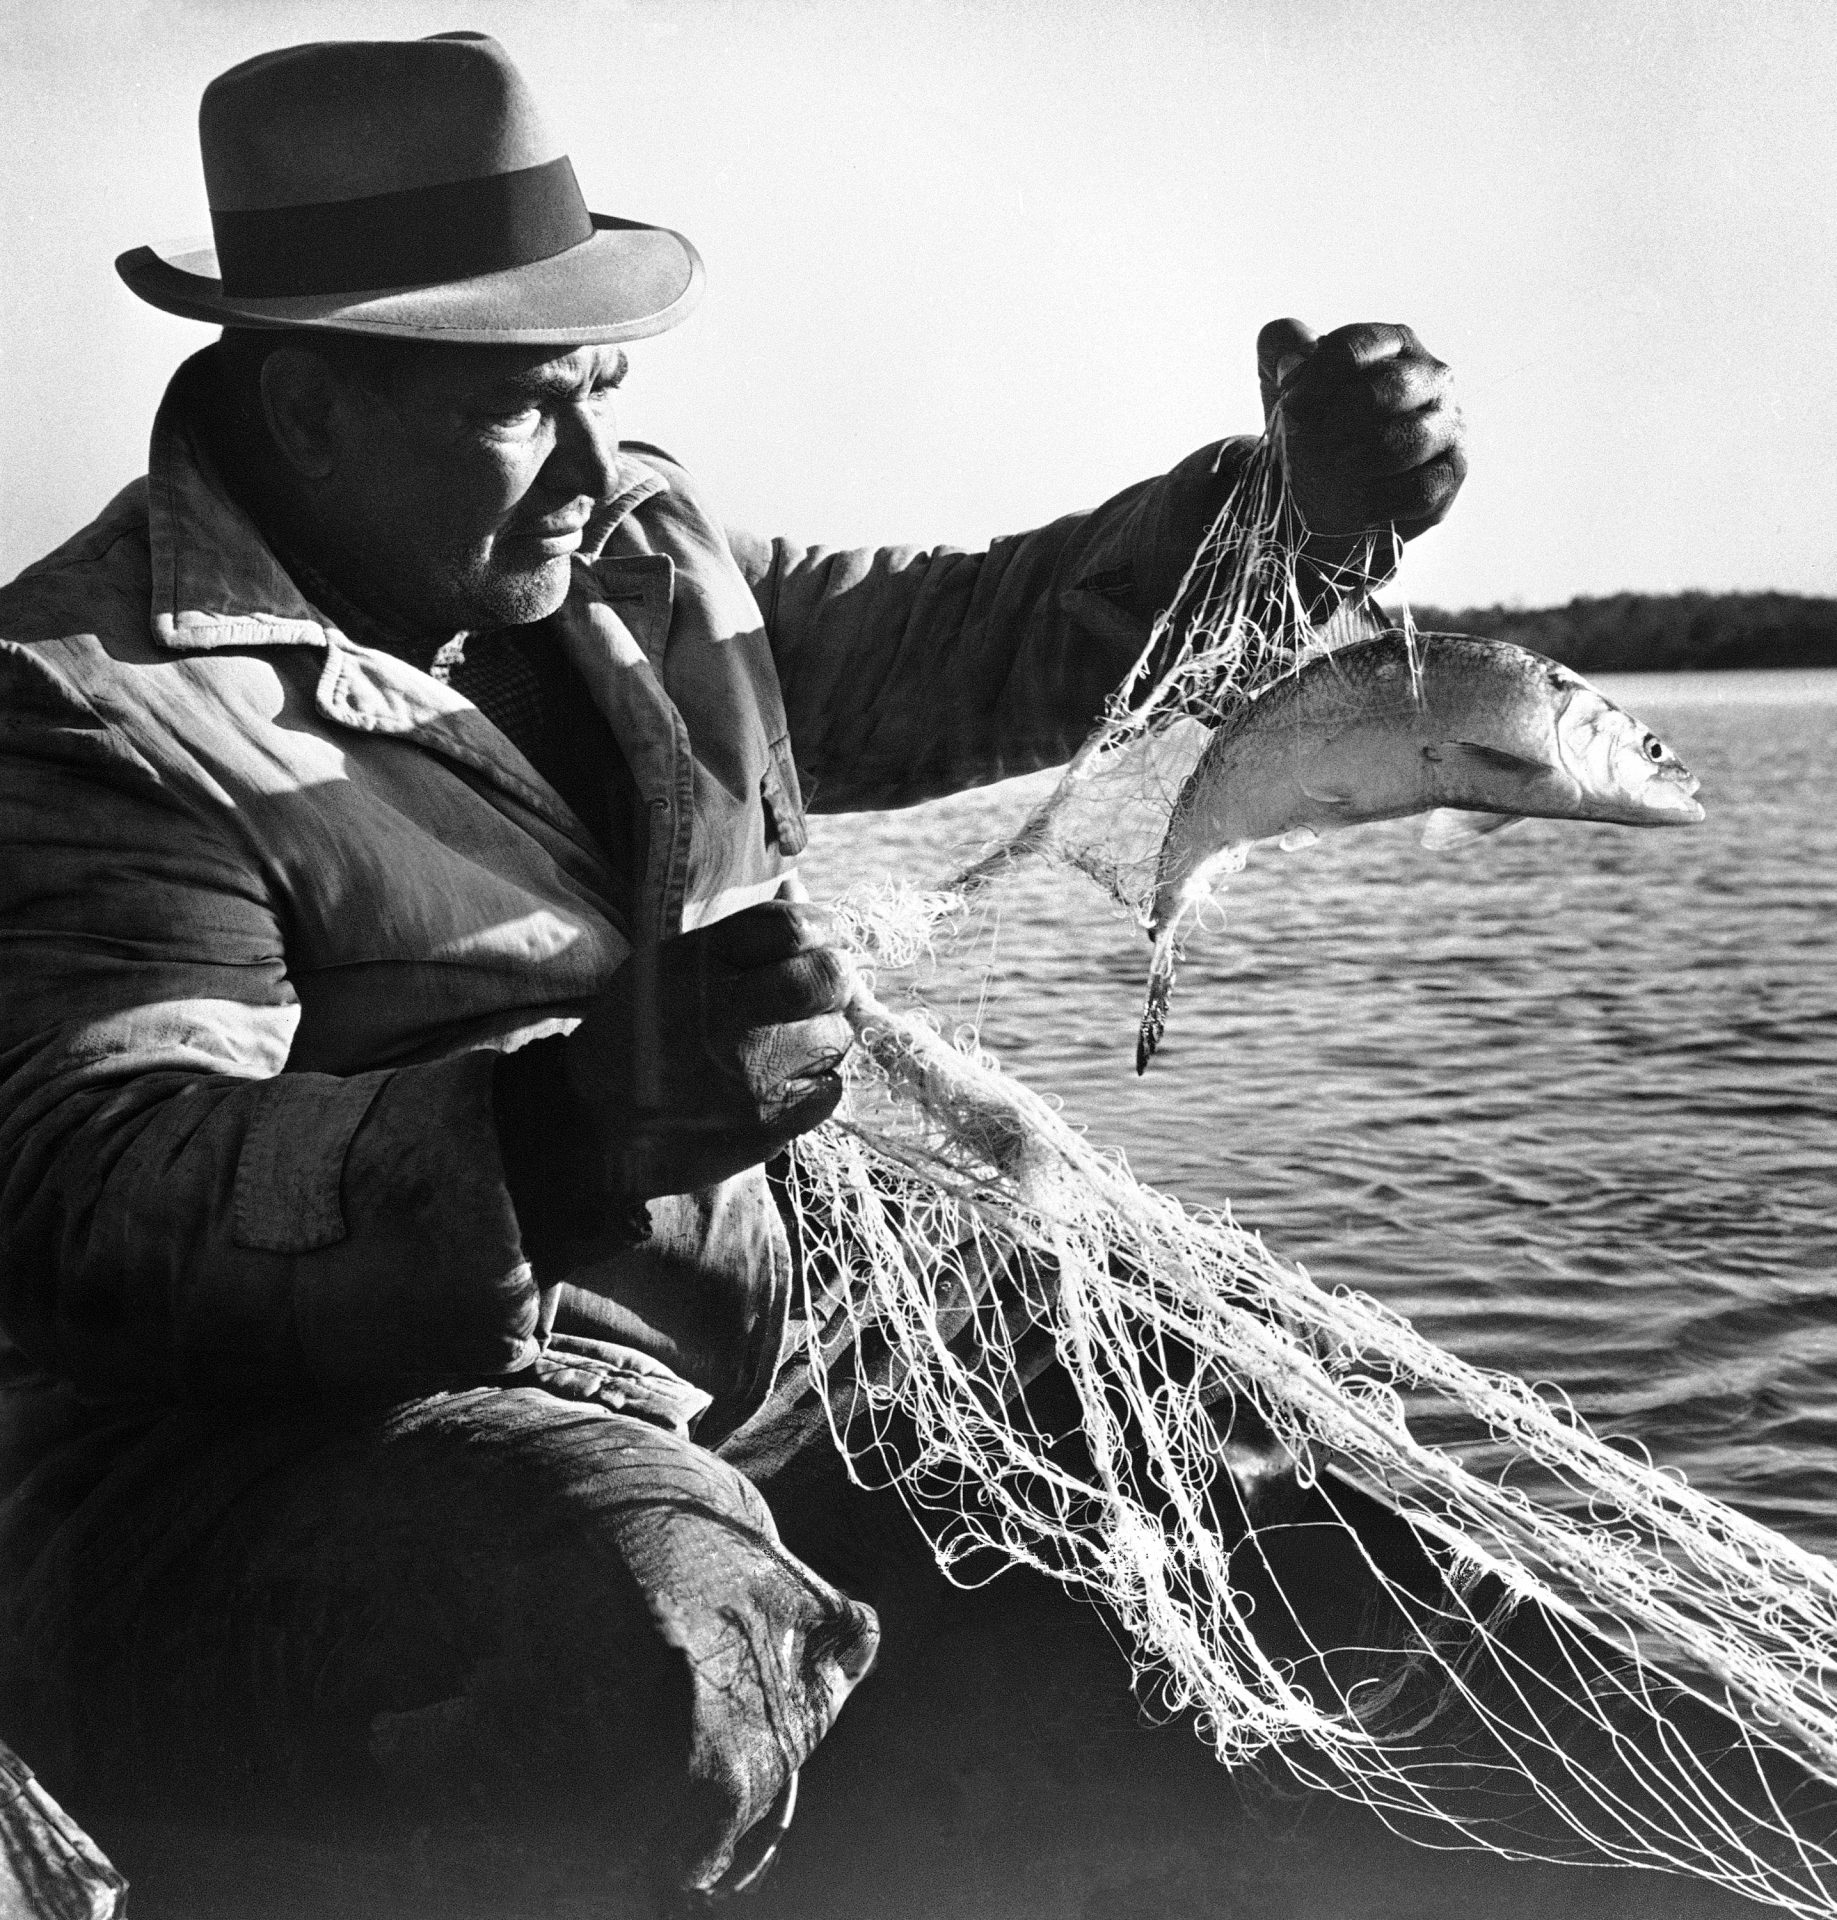 FILE PHOTO: In fishing clothes, Chief of O.T. Custalow brings up a shad in his net on the Mattaponi Indian reservation in Tidewater Virginia, July 25, 1961.